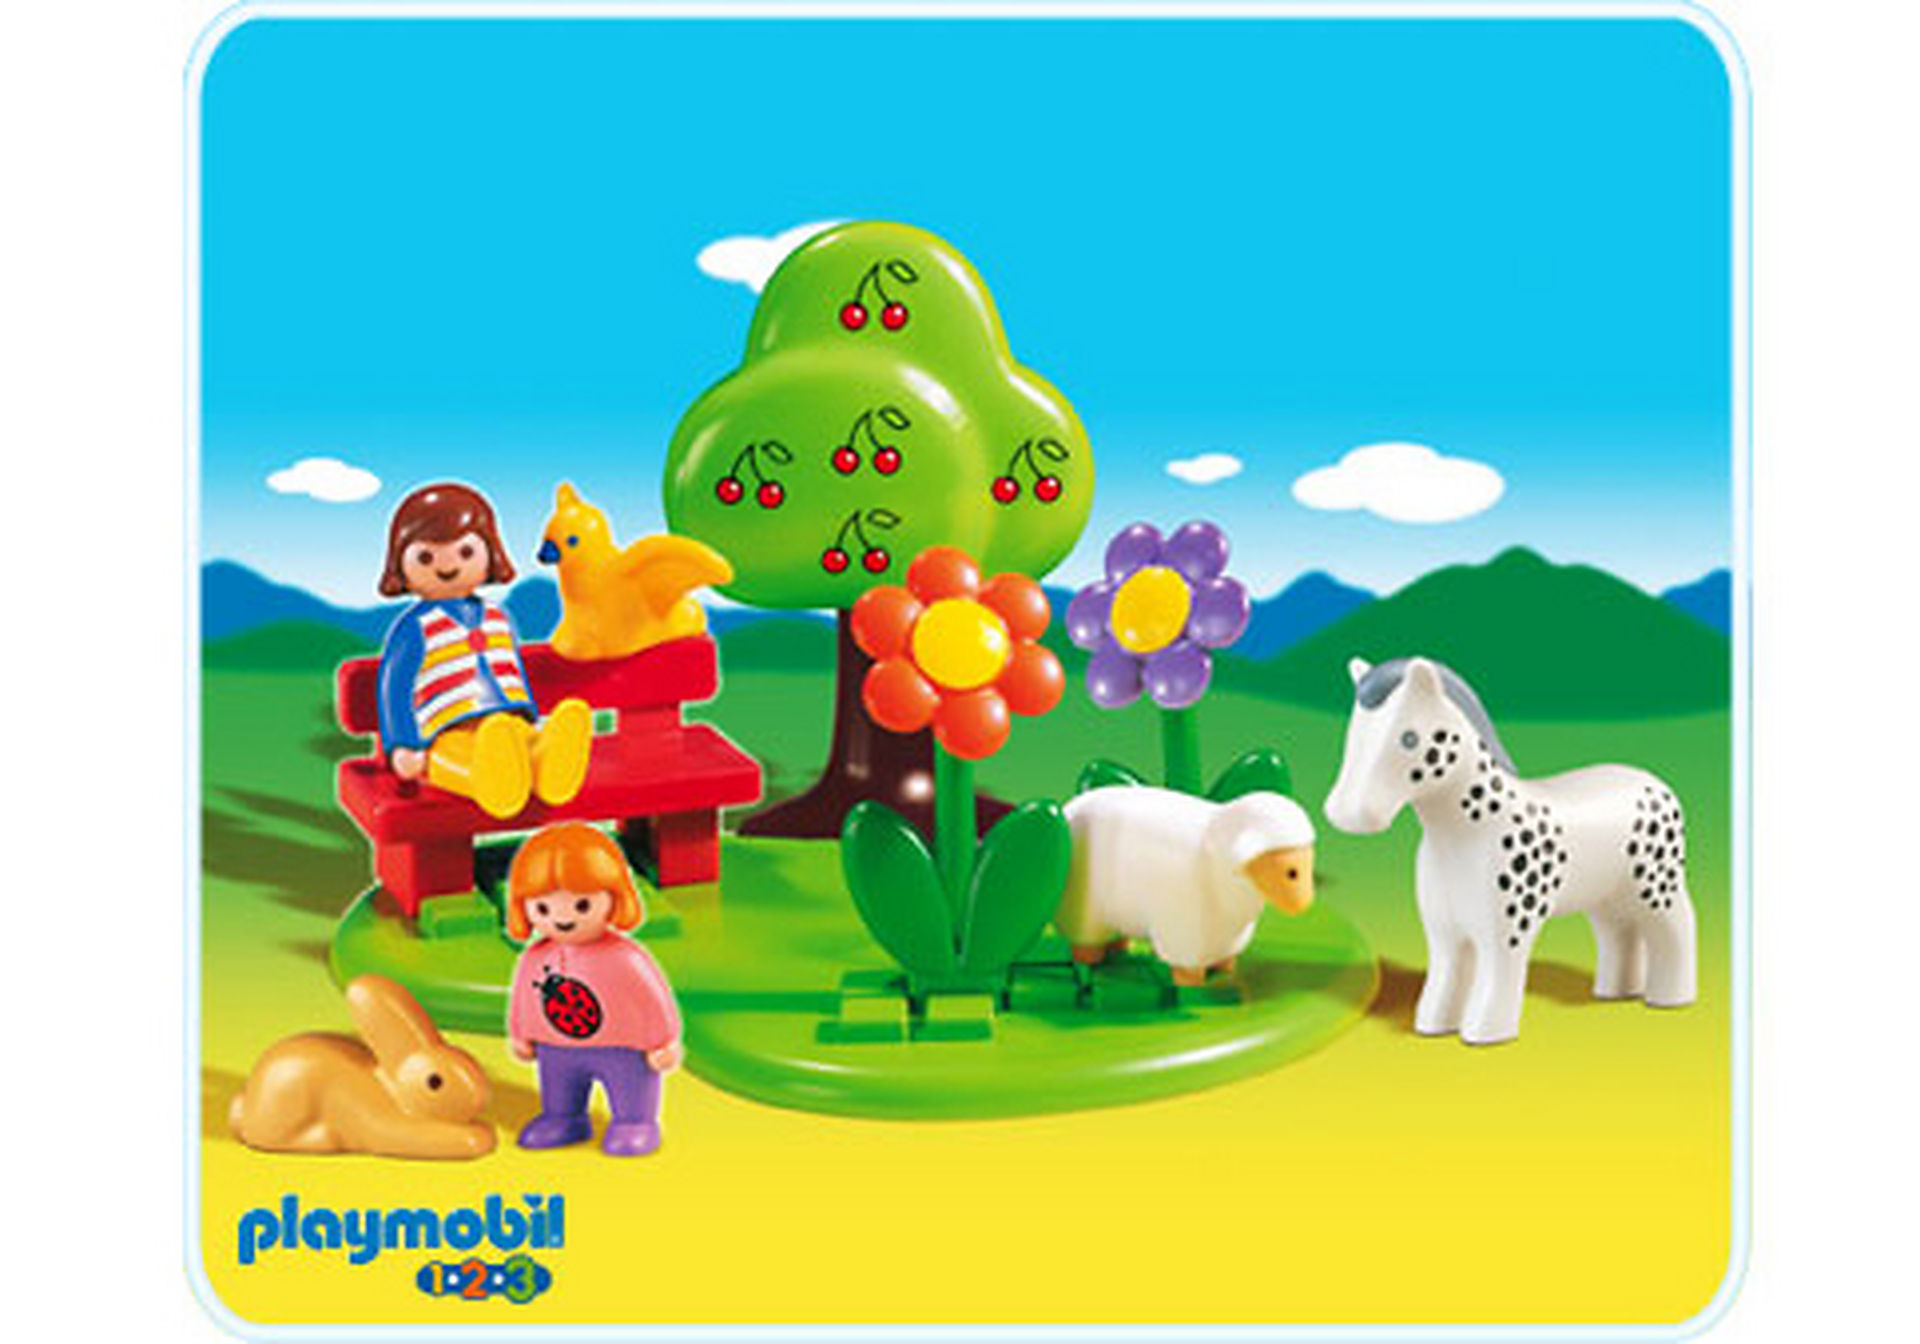 http://media.playmobil.com/i/playmobil/6757-A_product_detail/Square des animaux 1.2.3